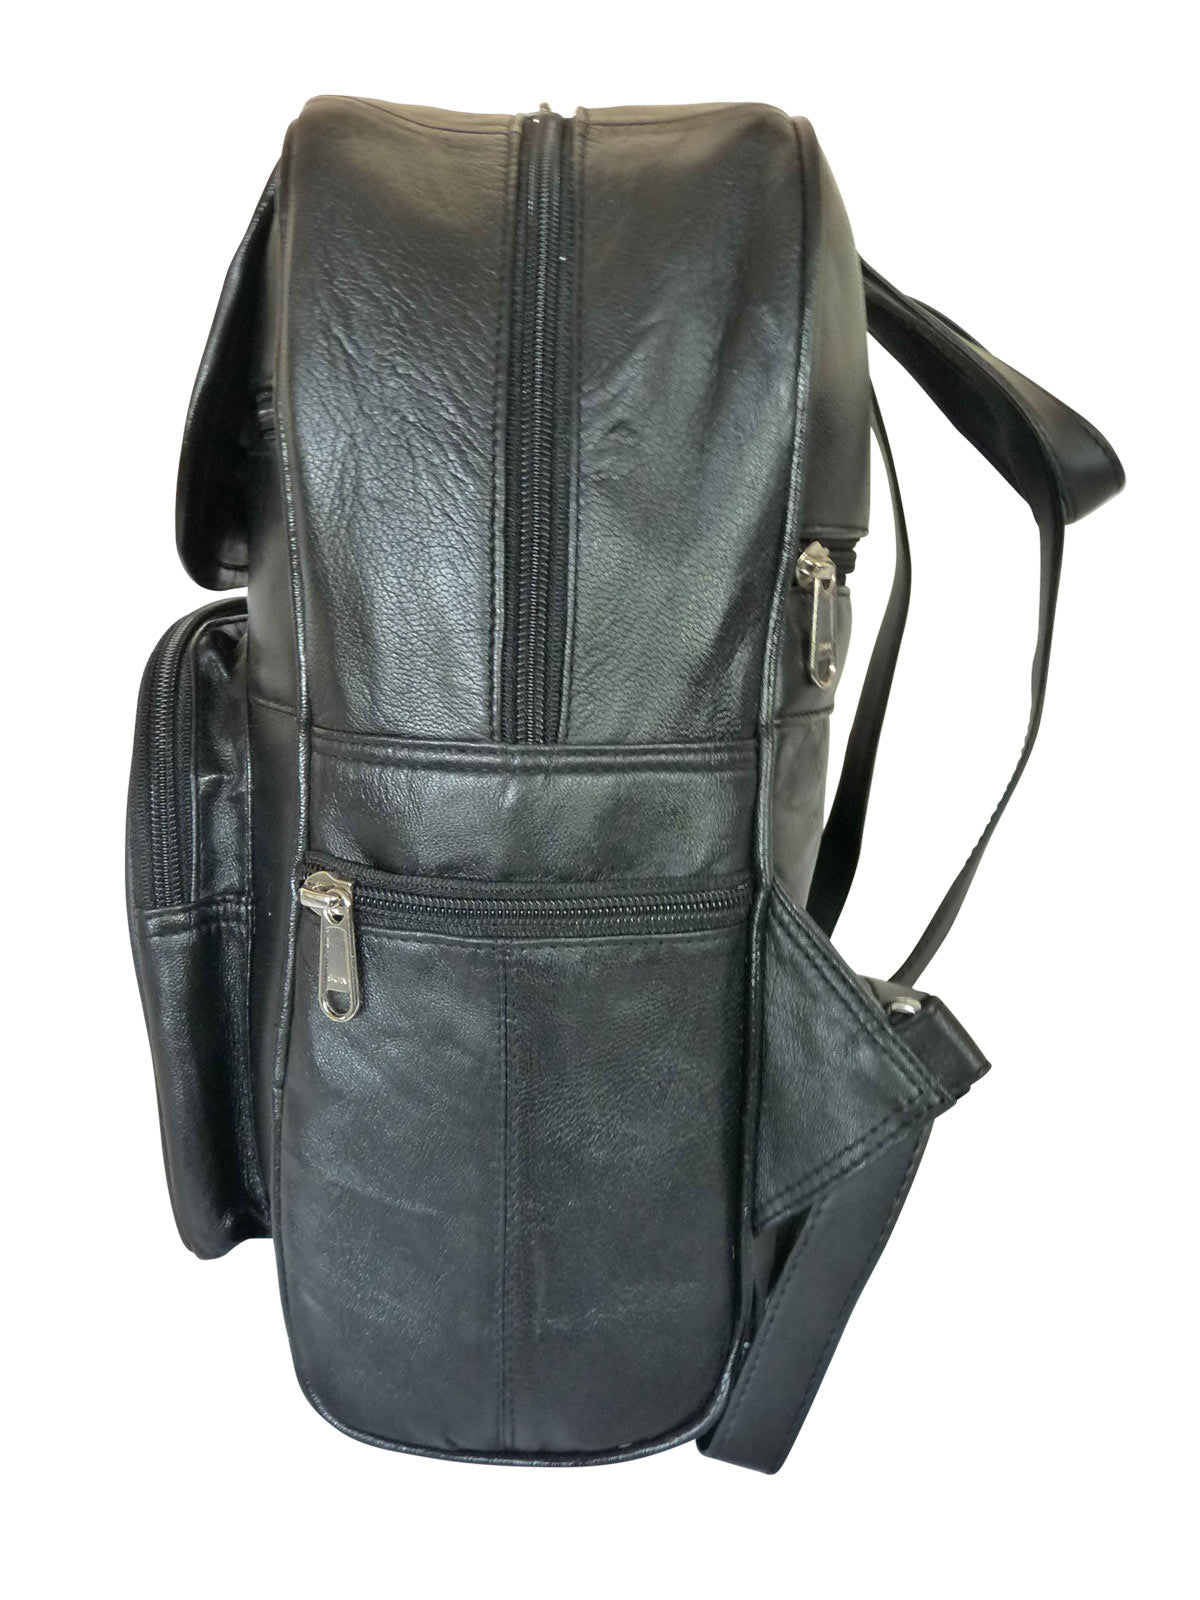 Real leather backpack handbag QL193Kss